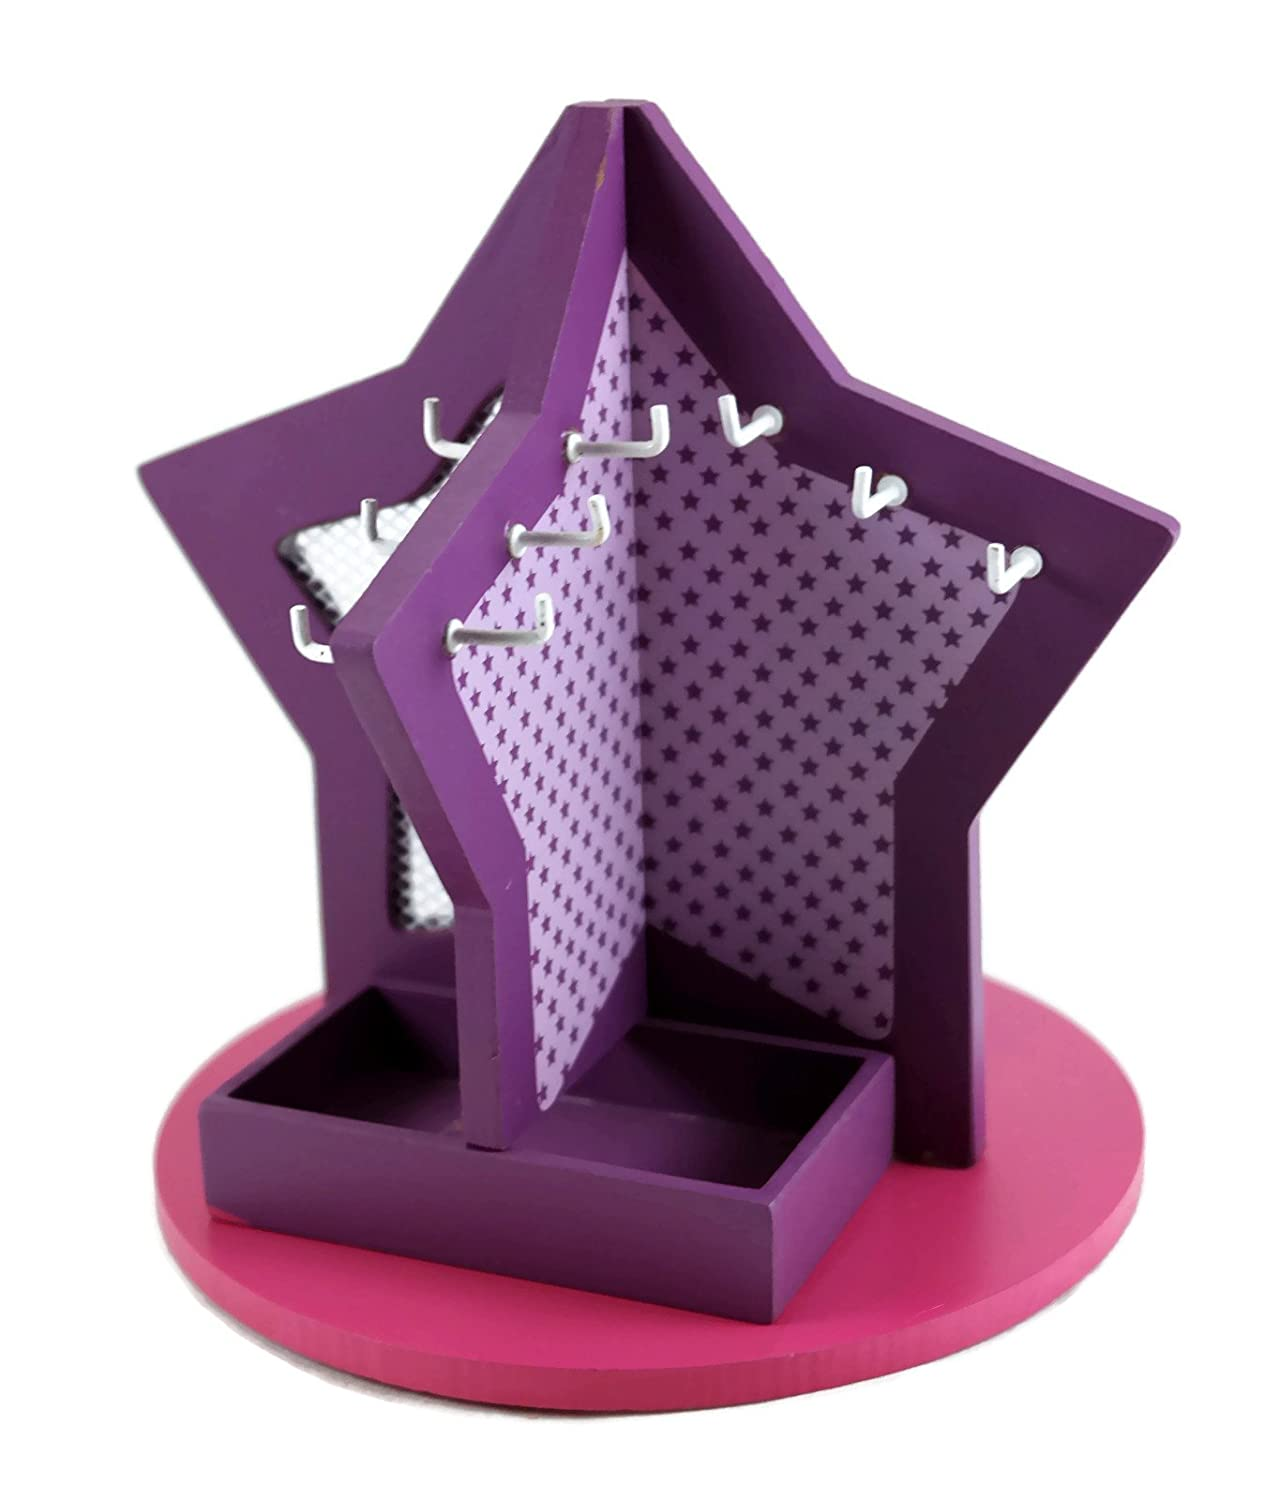 Avon Purple Small Star Shaped Multi-Sided Jewelry Holder Stand